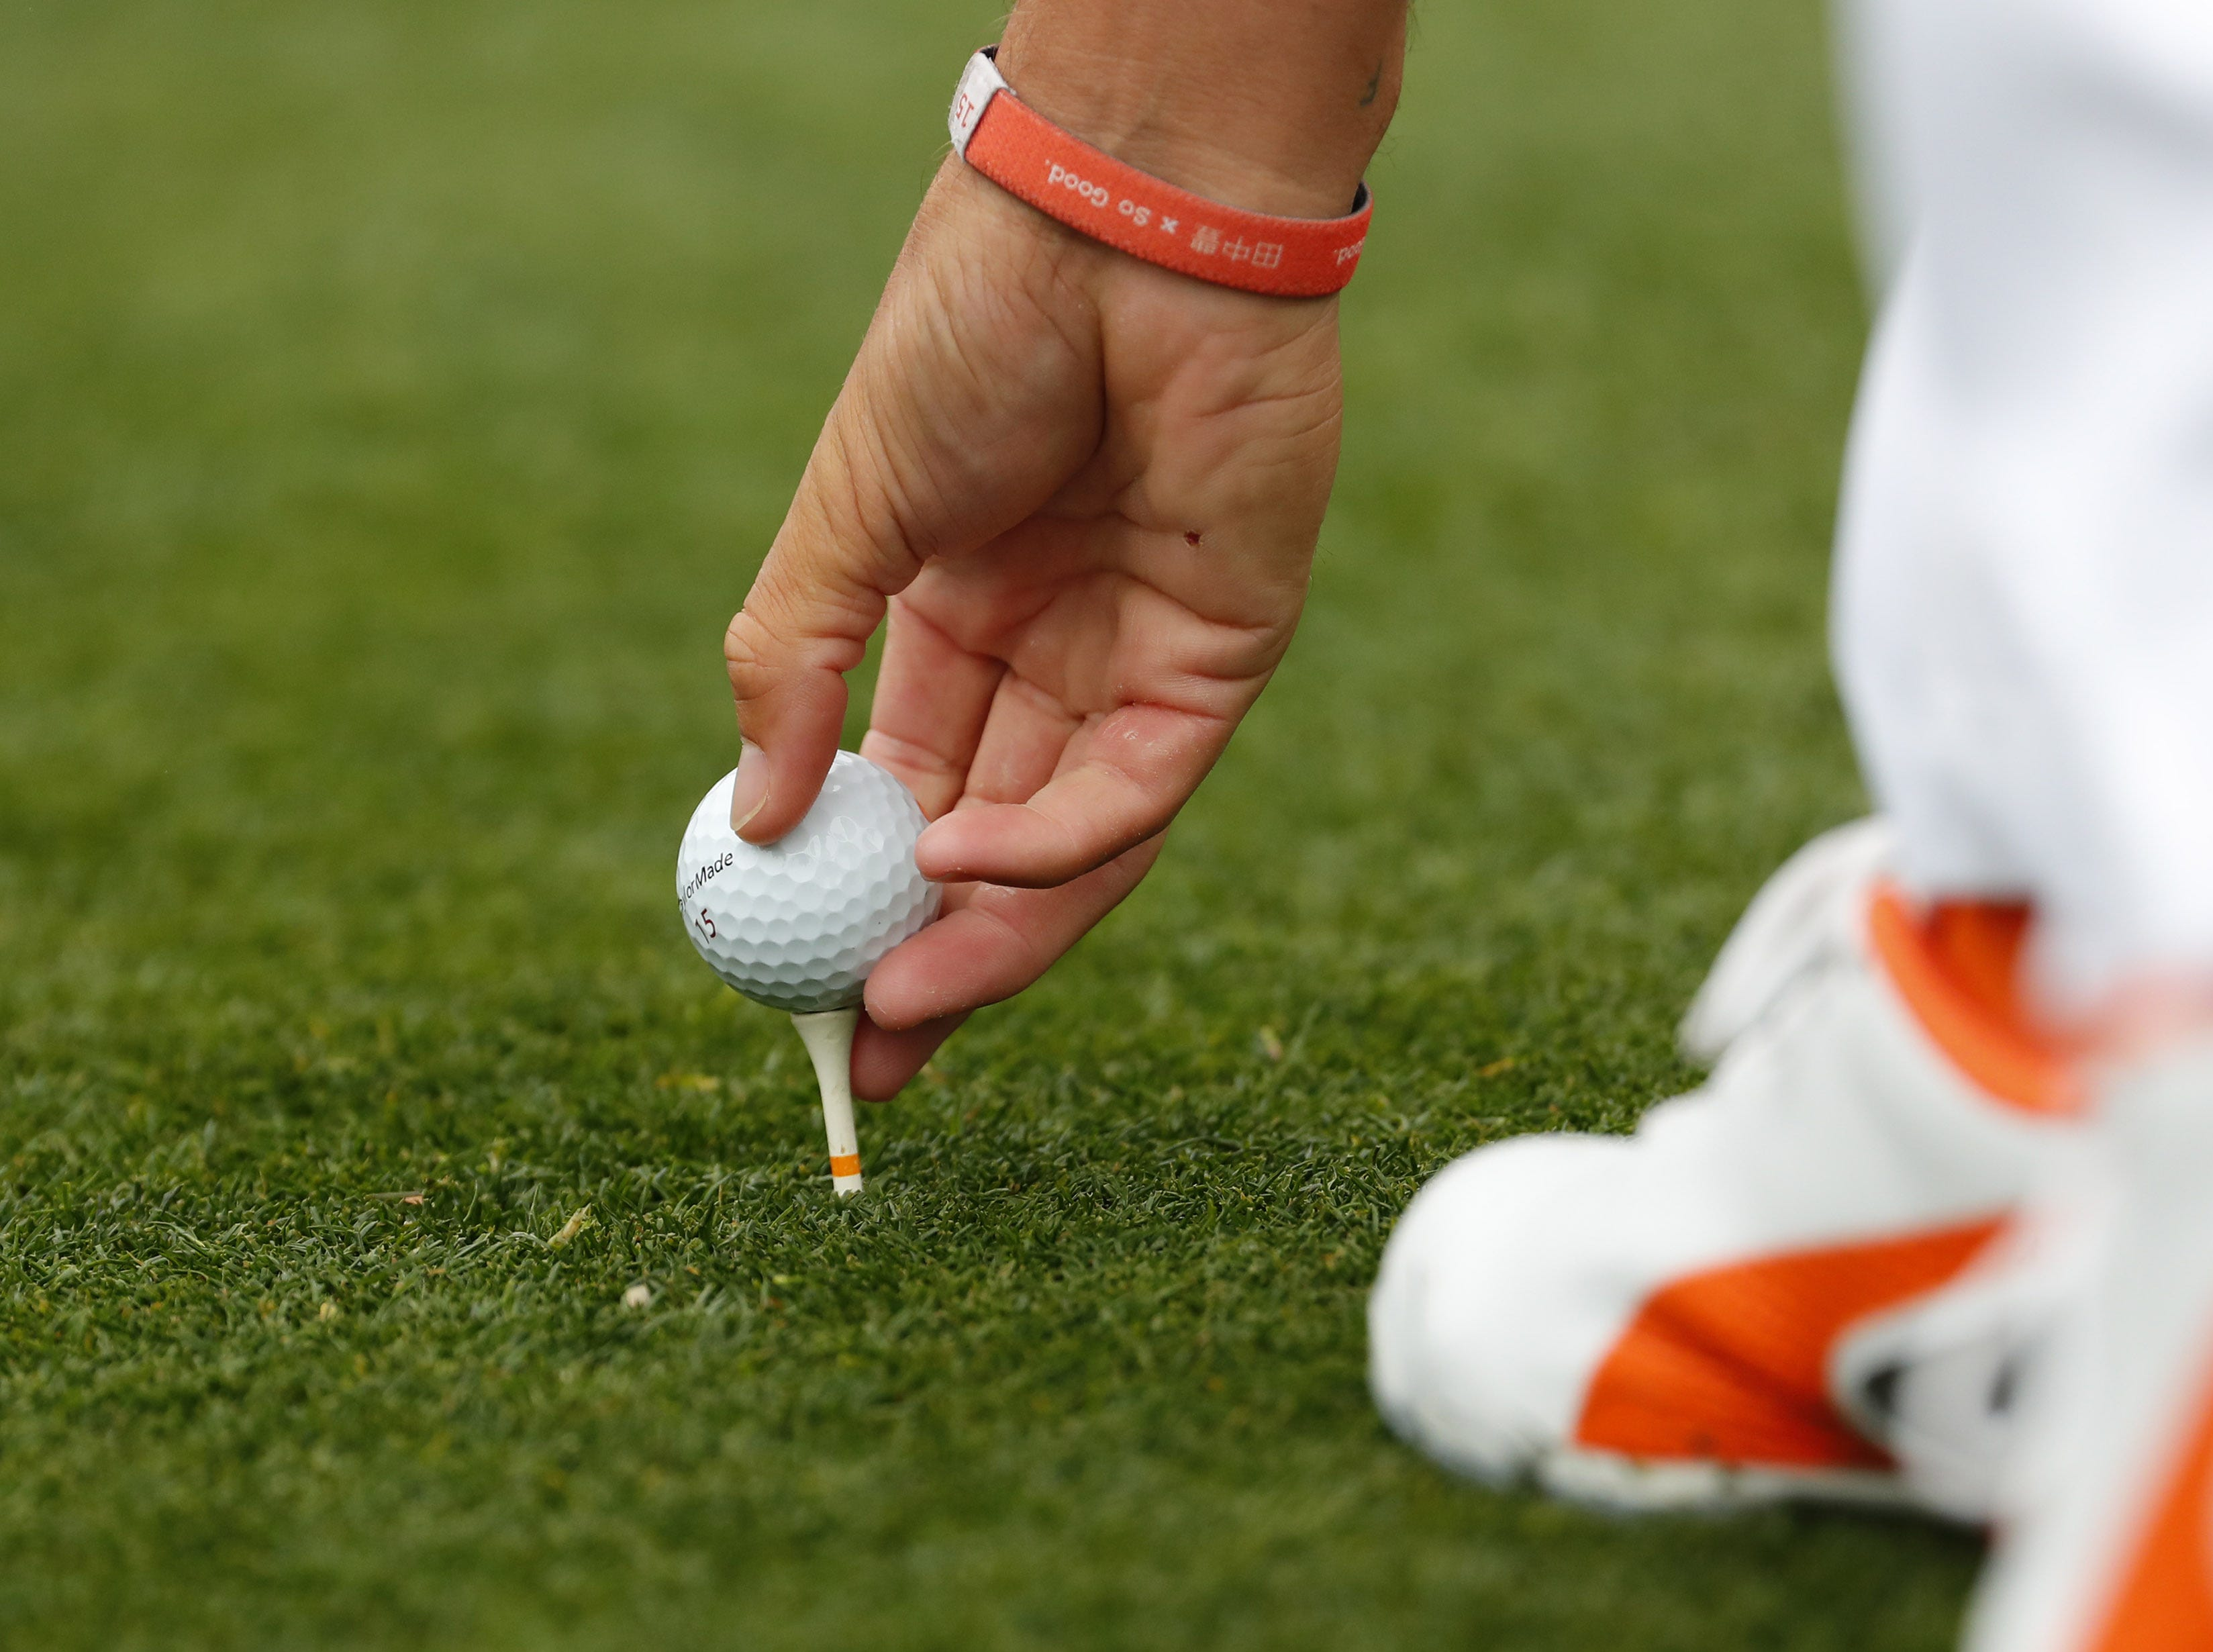 Rickie Fowler tees his ball up on the third hole during the final round of the Waste Management Phoenix Open at the TPC Scottsdale Feb. 3, 2019.